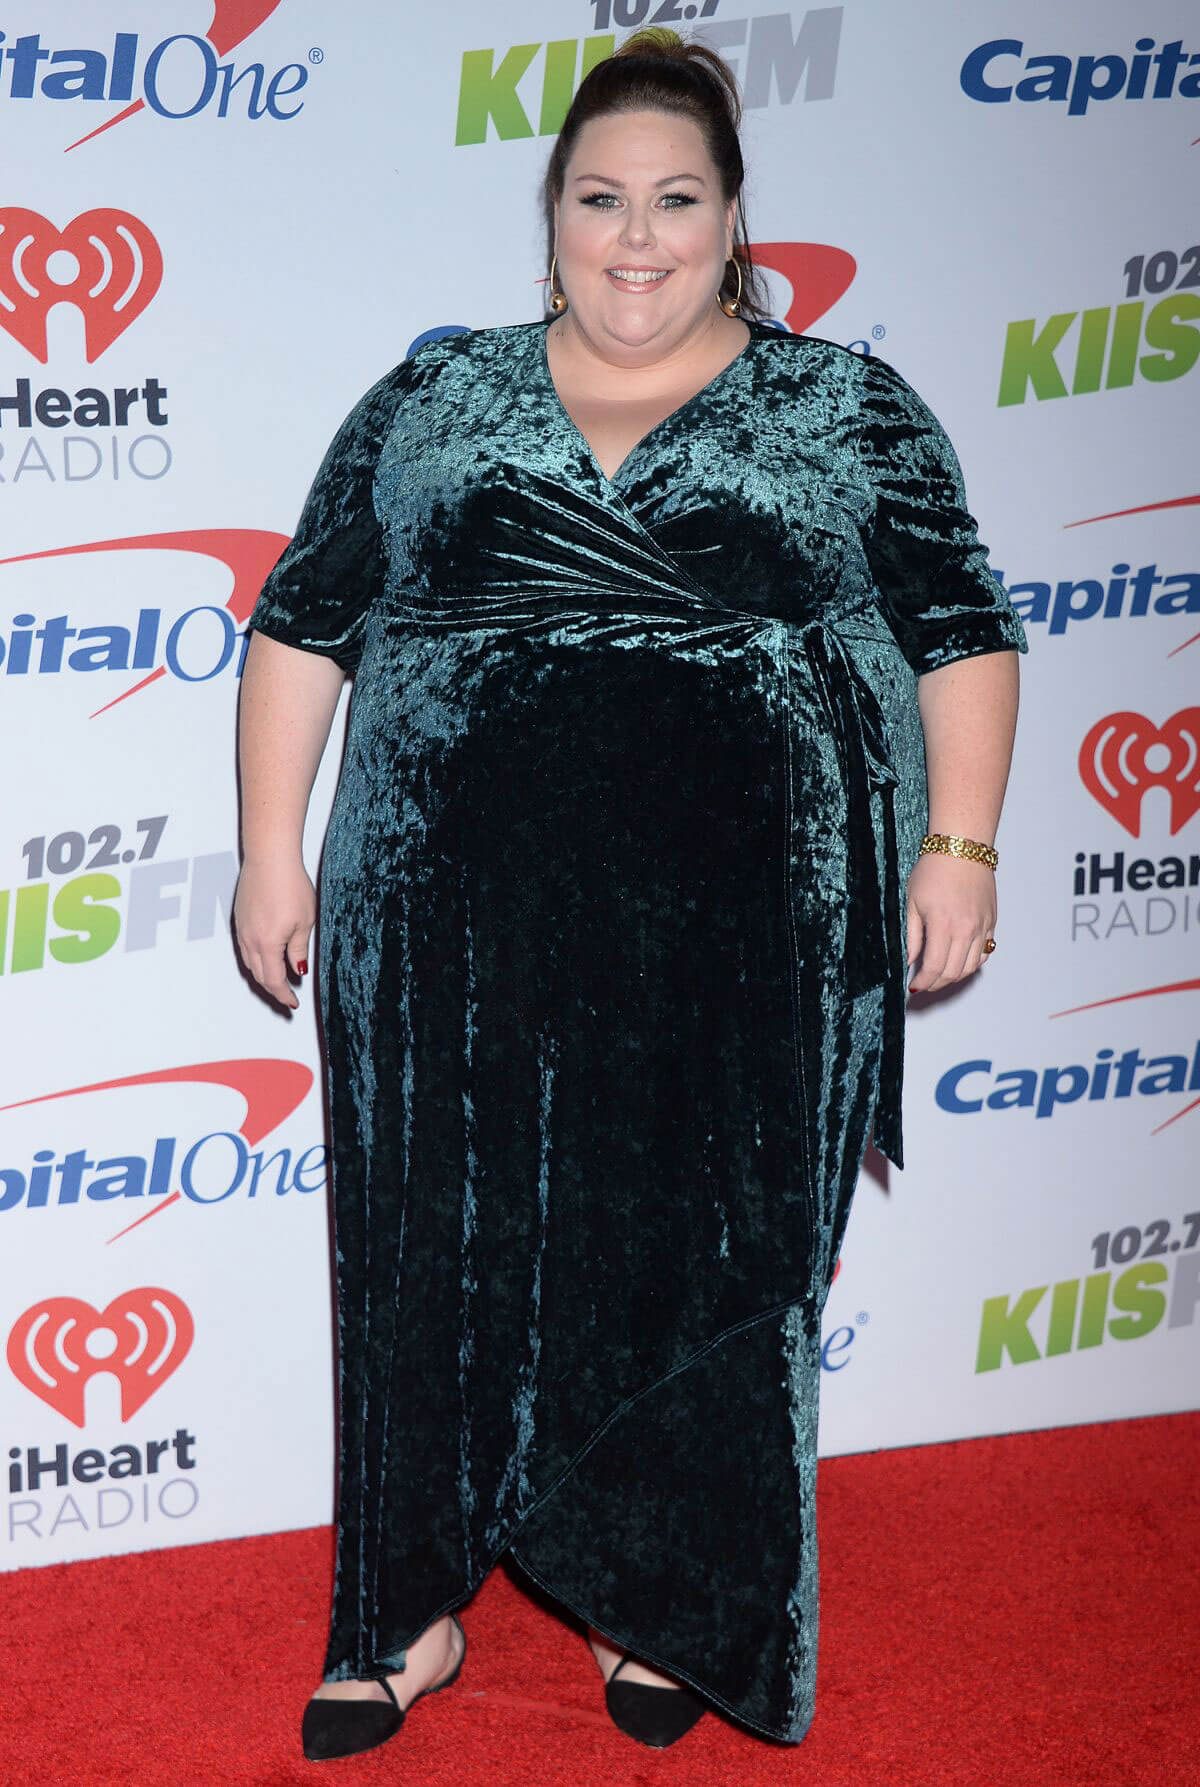 Chrissy Metz Stills at 102.7 KIIS FM's Jingle Ball in Los Angeles 2017/12/01